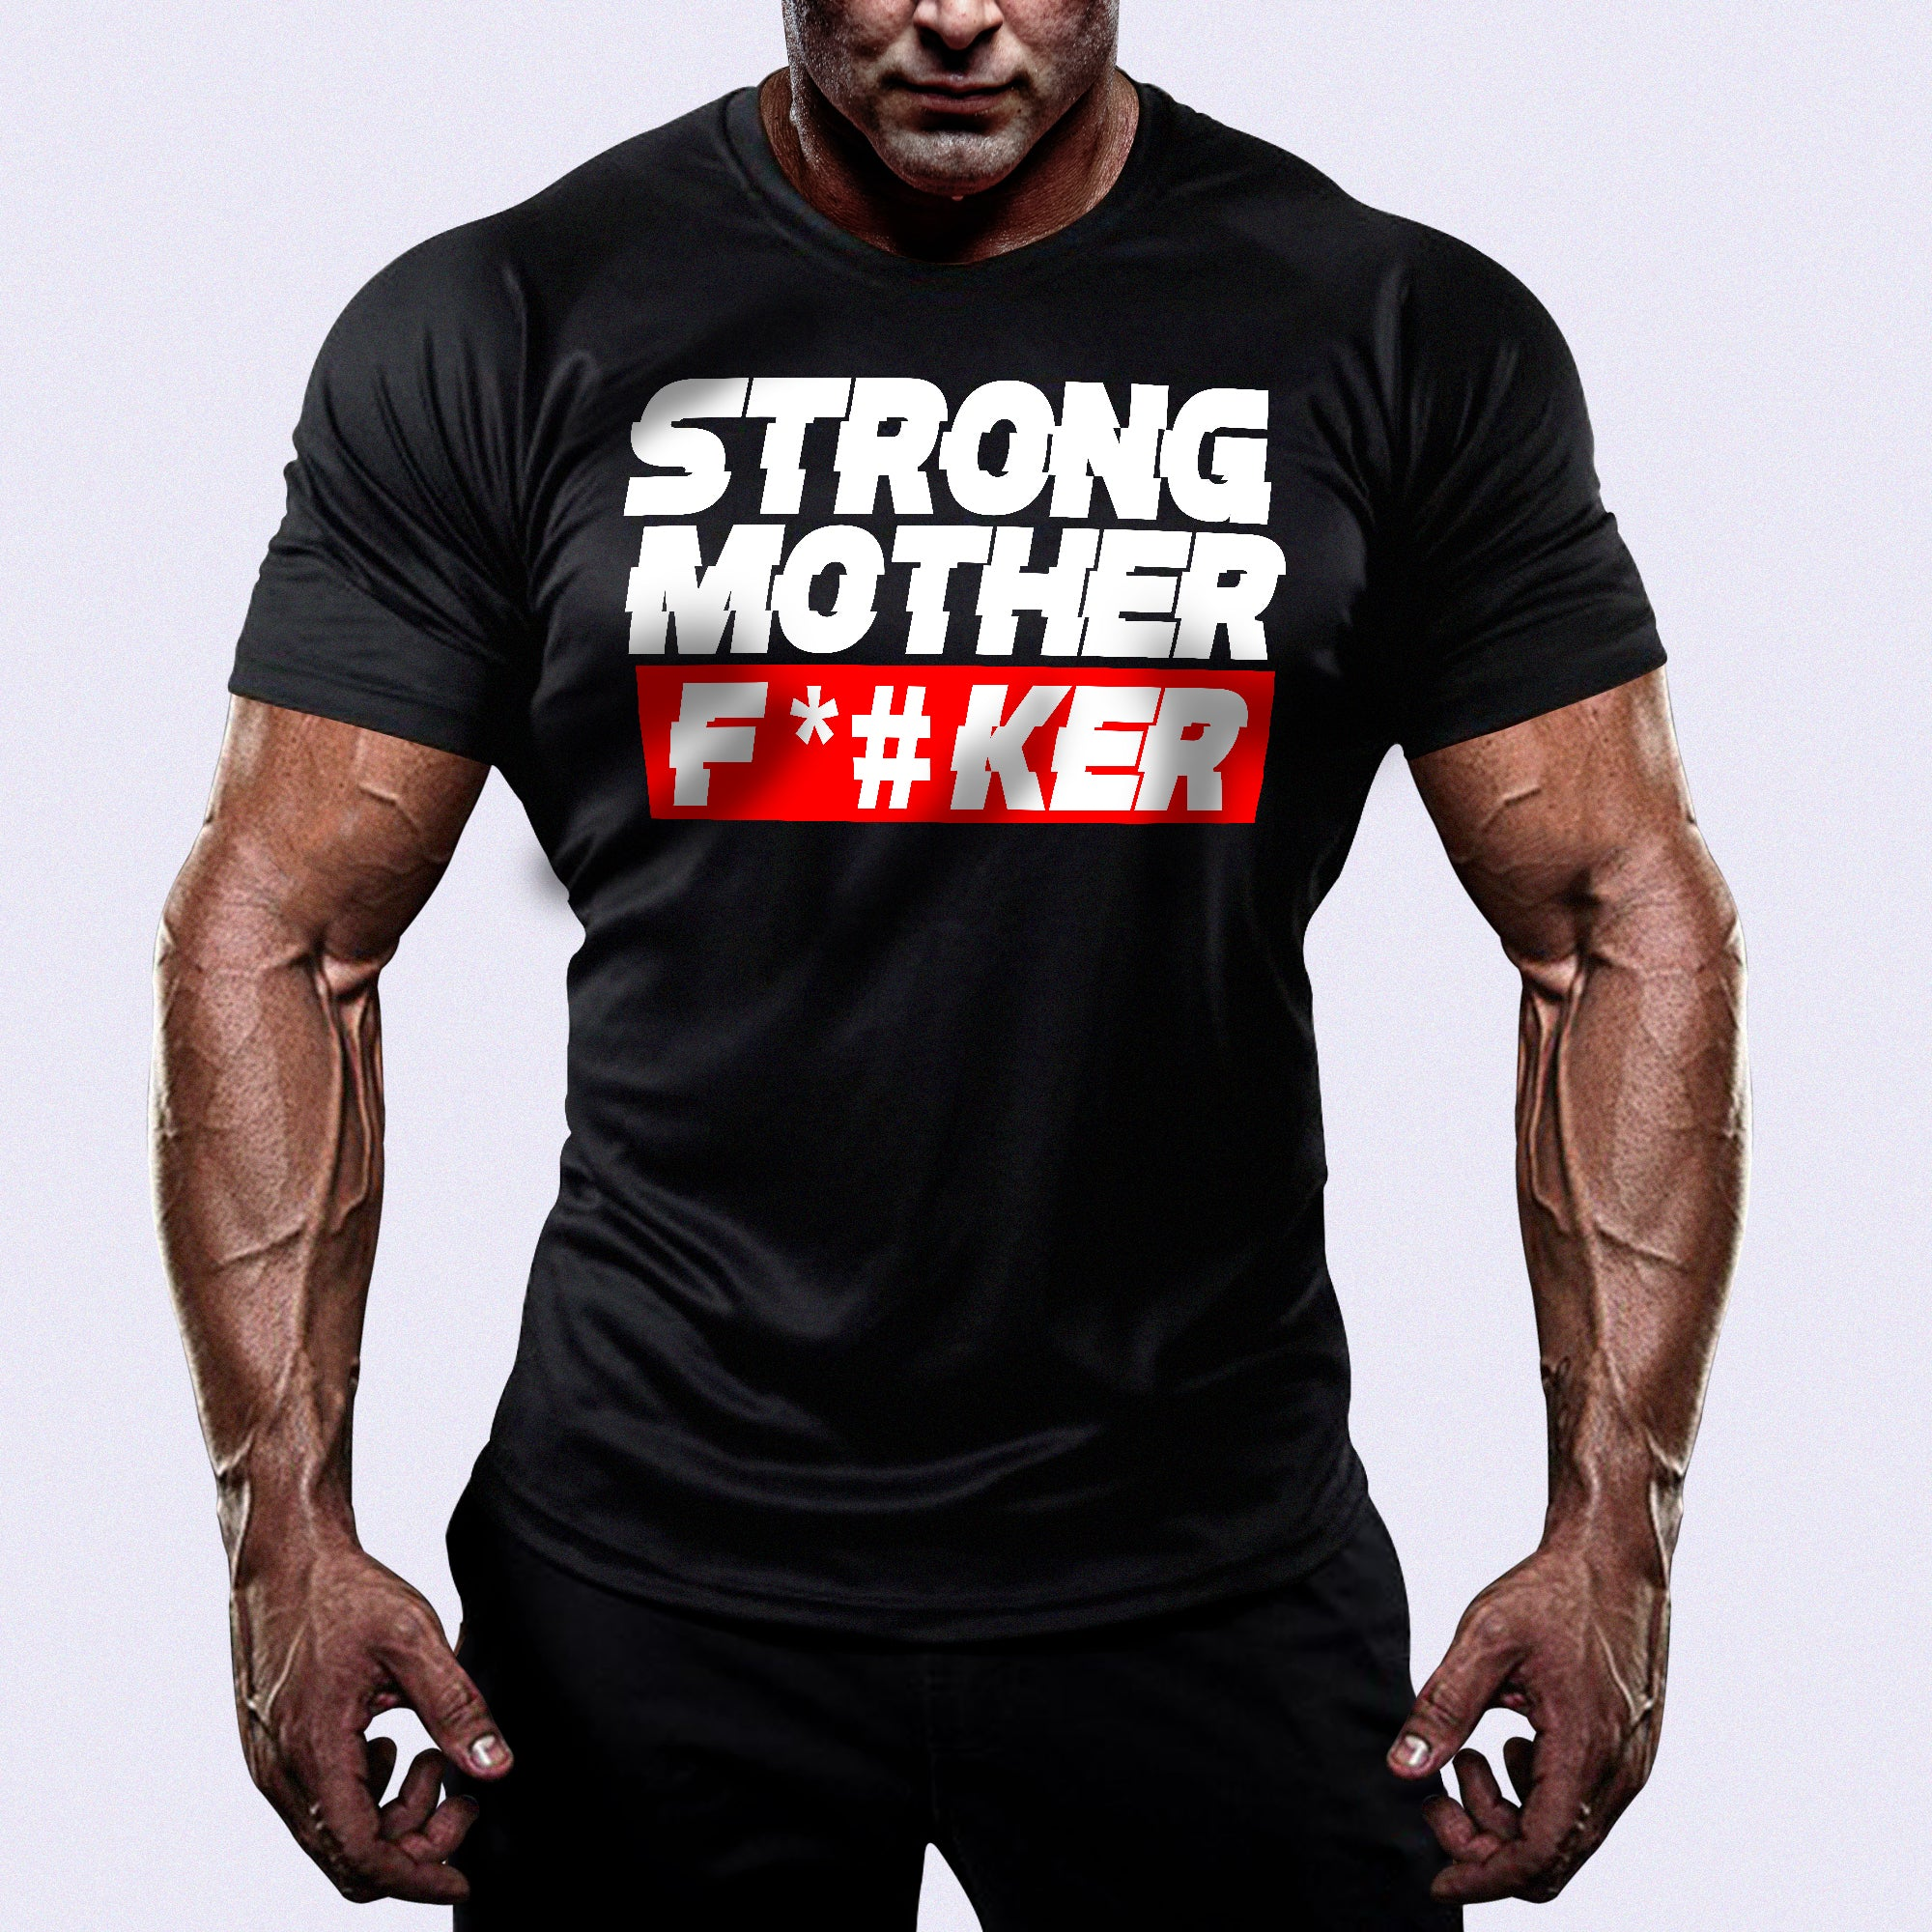 Strong MotherF*#ker™ Shirt